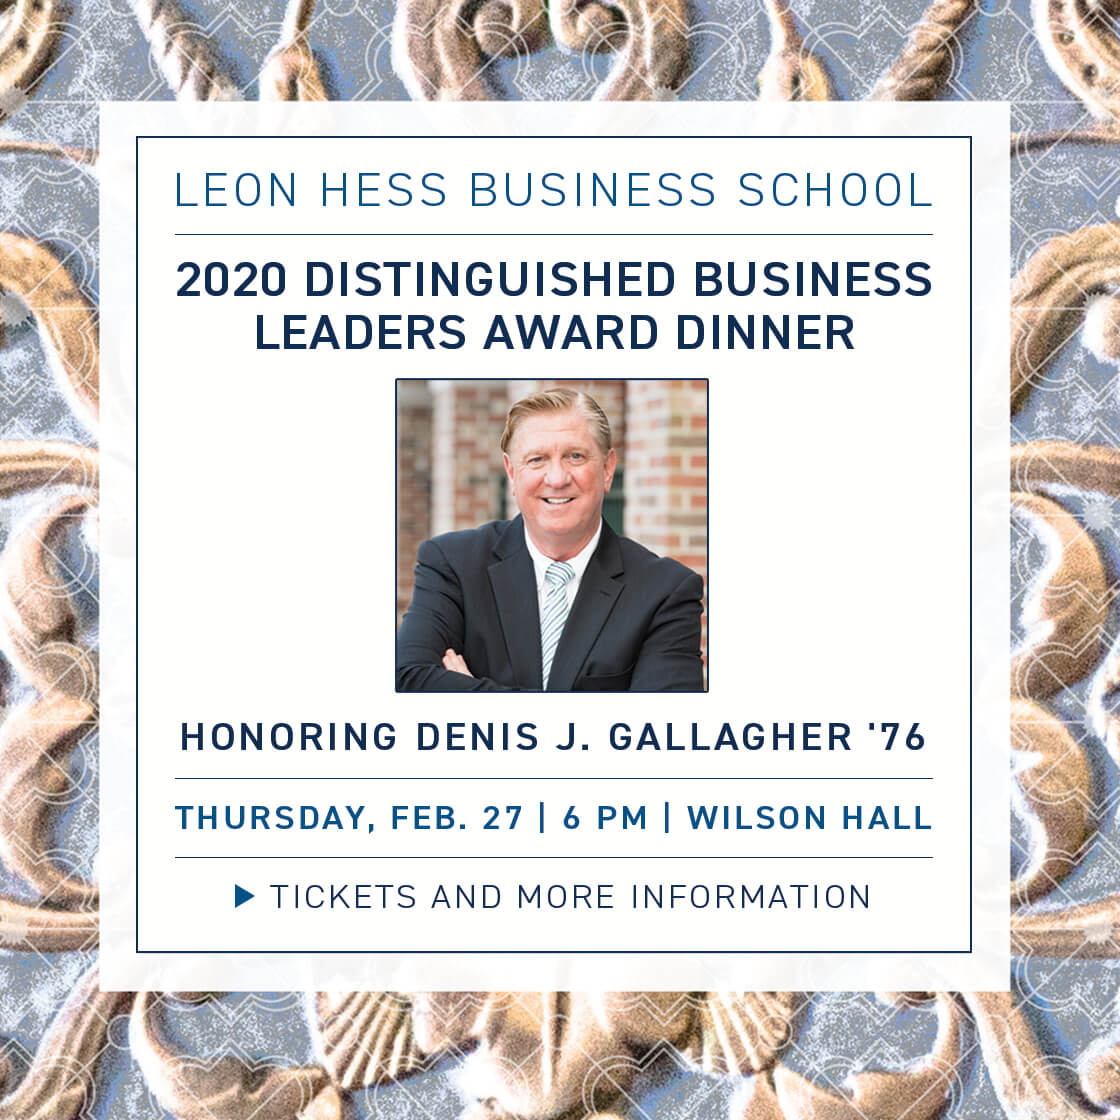 Photo image of poster announcing 2020 Distinguished Business Leaders Award Dinner honoring Denis J. Gallagher '76 at Monmouth University